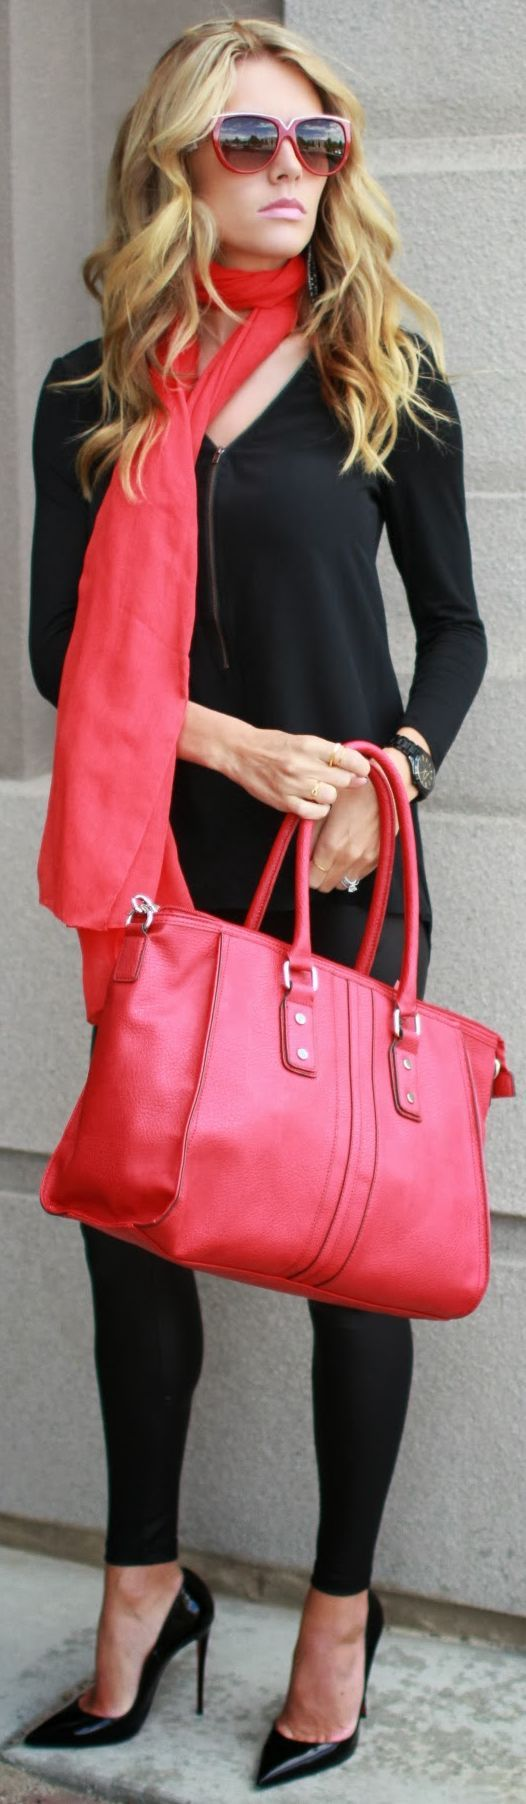 Similar bag available from #stelladot at www.stelladot.com/elainemarshall (Madison bag in Poppy)